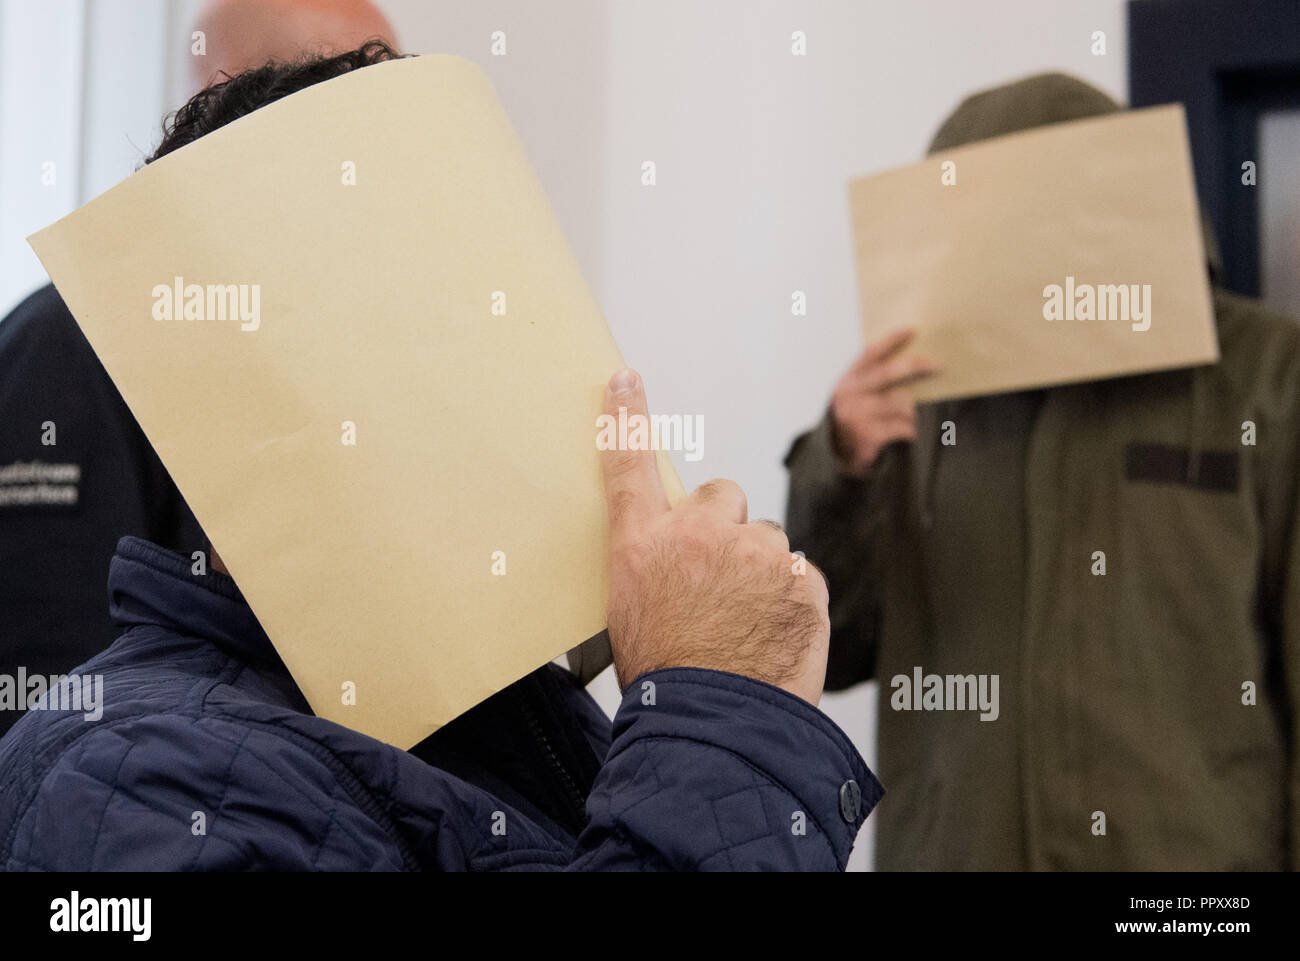 28 September 2018, Lower Saxony, Celle: The defendants will be brought into a courtroom of the district court. Because it allegedly supported the terrorist militia Islamic State IS and called for attacks, a pair of twins from Salzgitter have to answer to the Higher Regional Court in Celle. The trial shall take place on the premises of the Local Court. Photo: Julian Stratenschulte/dpa - Stock Image